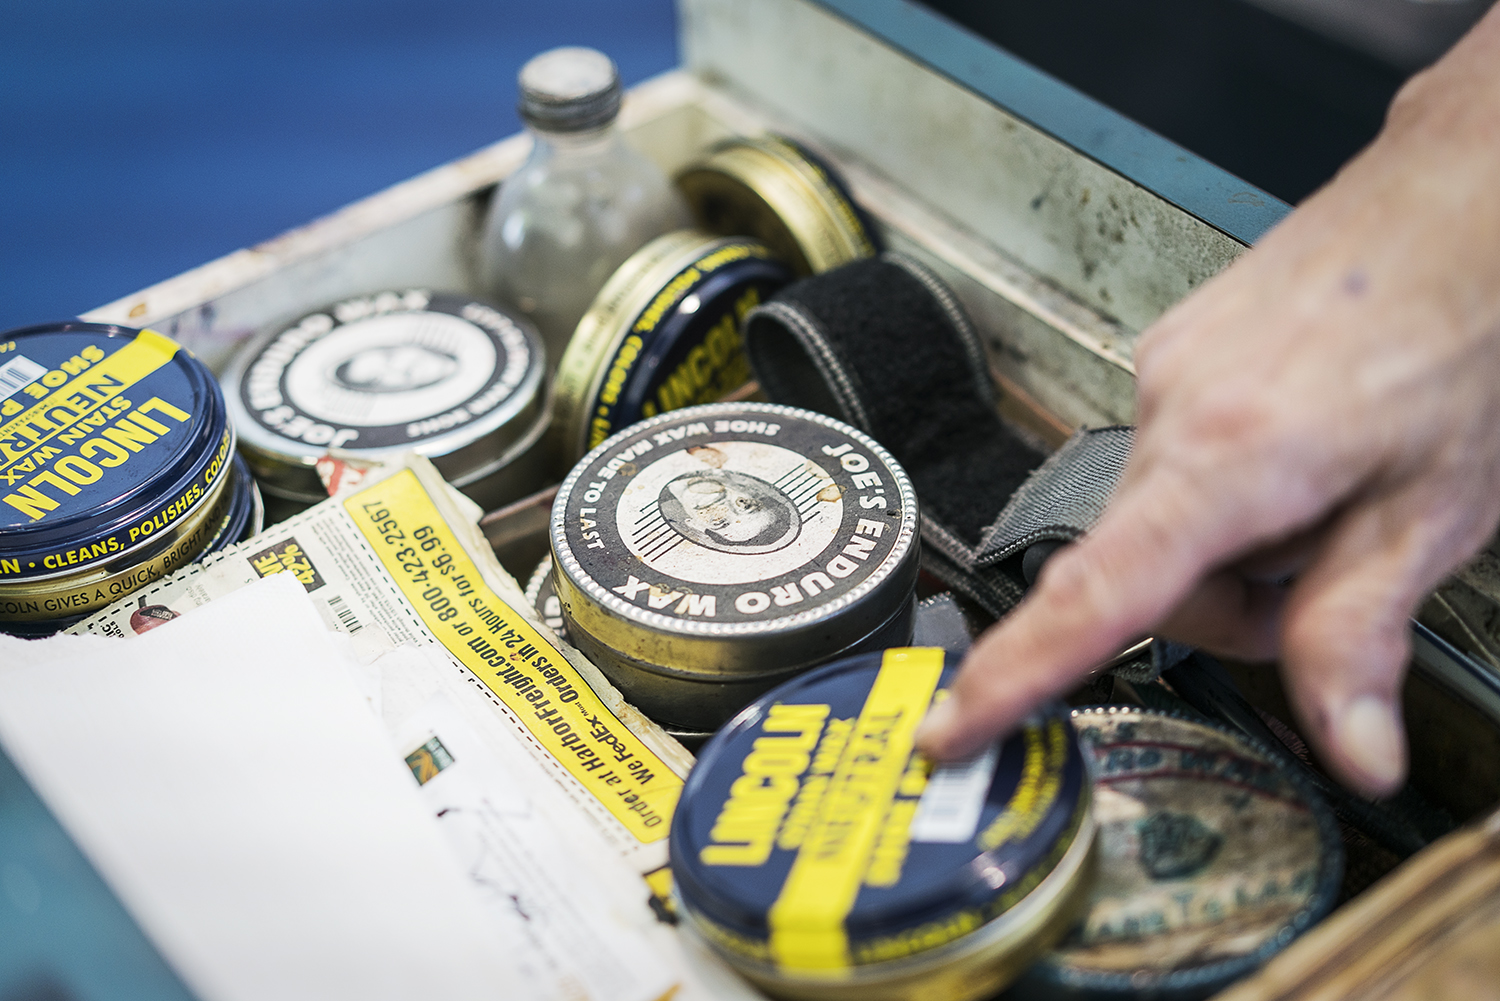 Flint, MI - Friday, January 26, 2018: Mt. Morris resident Joe Garza, 69, goes through his drawer of shoe polish at the shoe shine stand at Bishop International Airport, where he has worked for 36 years. Tim Galloway for FlintSide